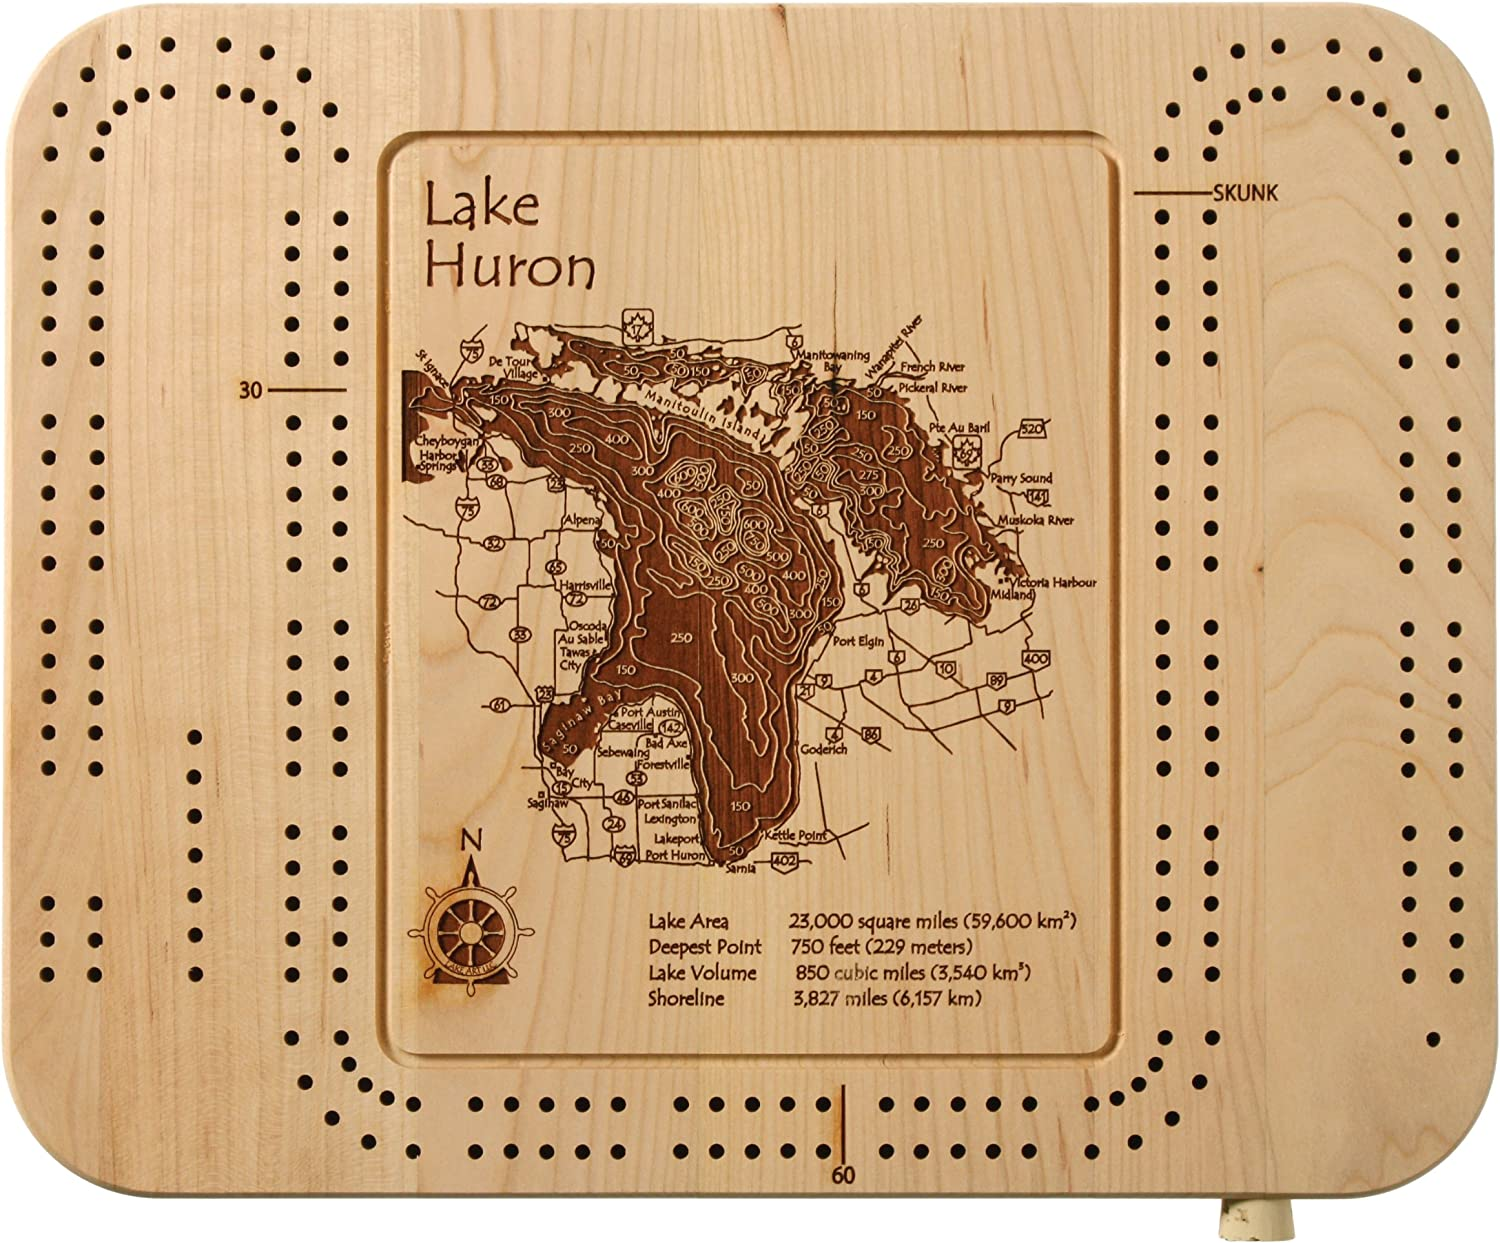 Amazon Com Newfound Lake Grafton County Nh Cribbage Board 9 X 12 In Laser Etched Wood Nautical Chart And Topographic Depth Map Home Kitchen